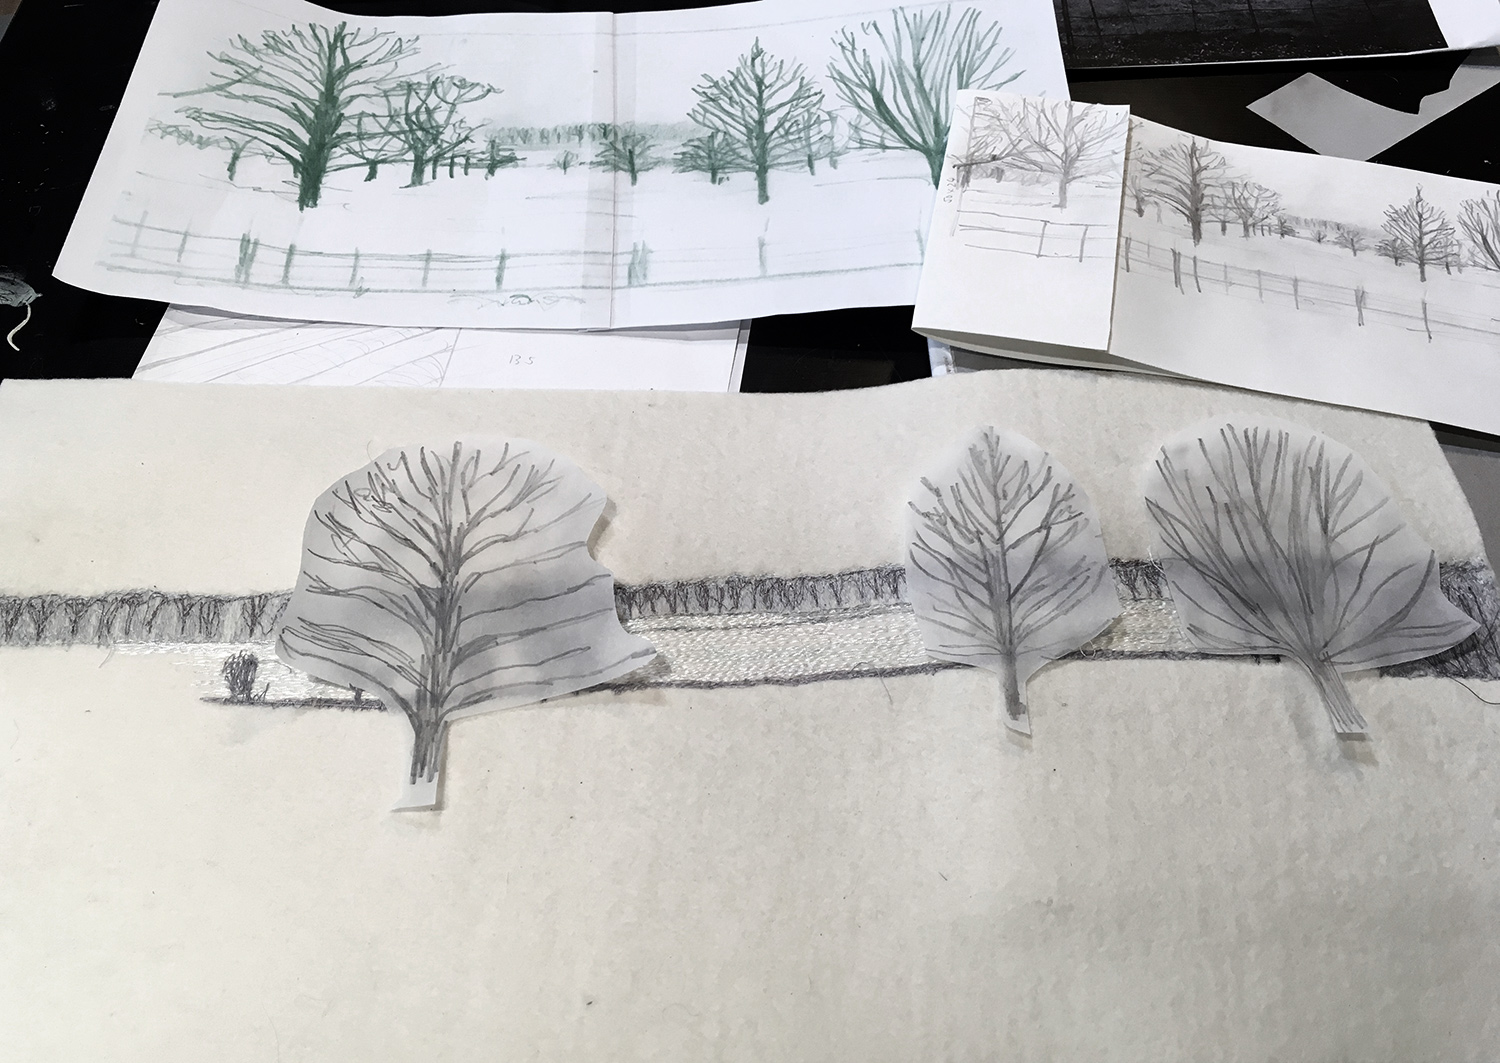 Planning the position of the trees in the picture